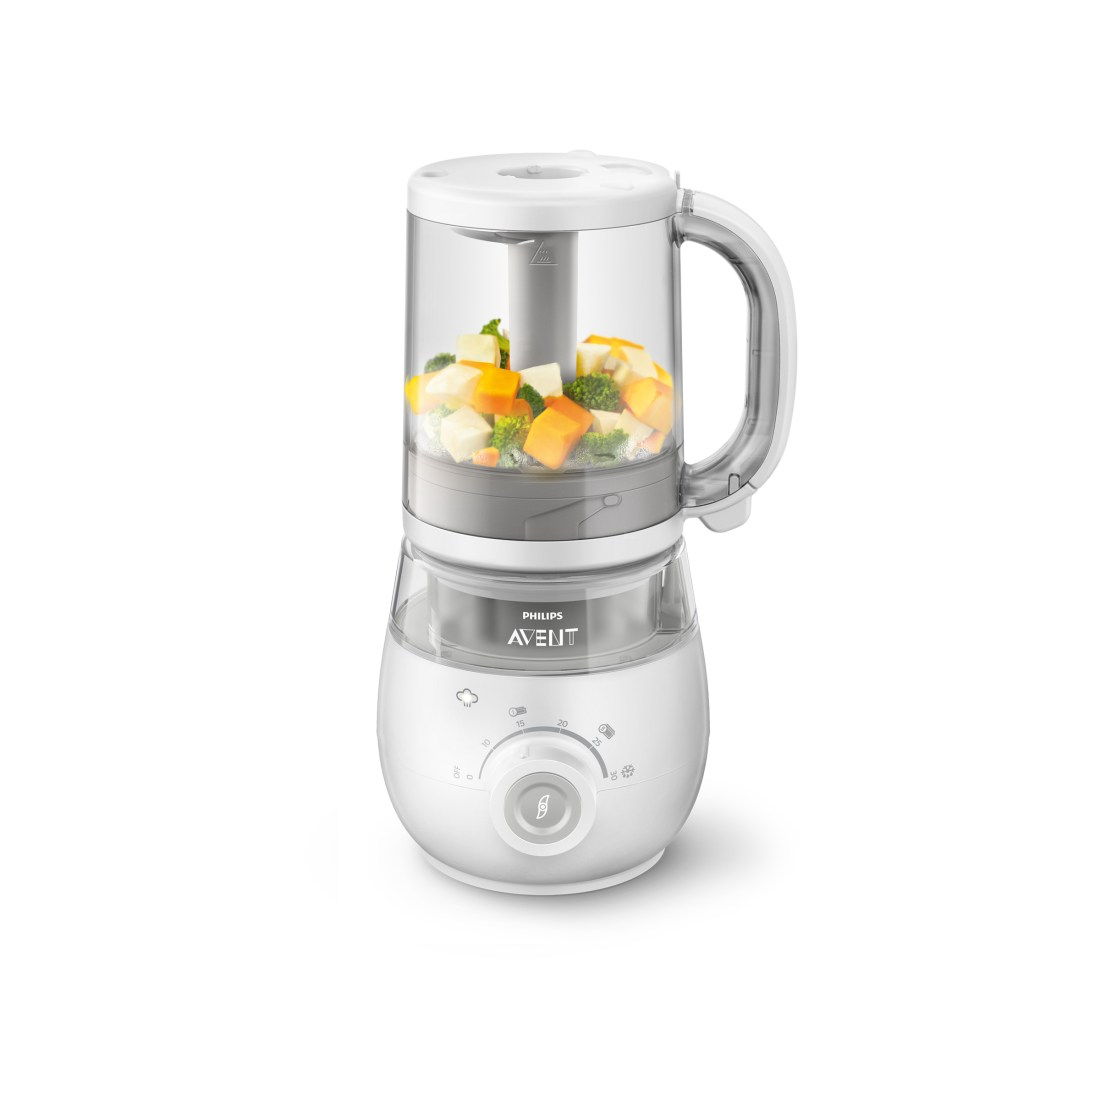 Phillips Avent_steamer_blender_babyfoodprocessor